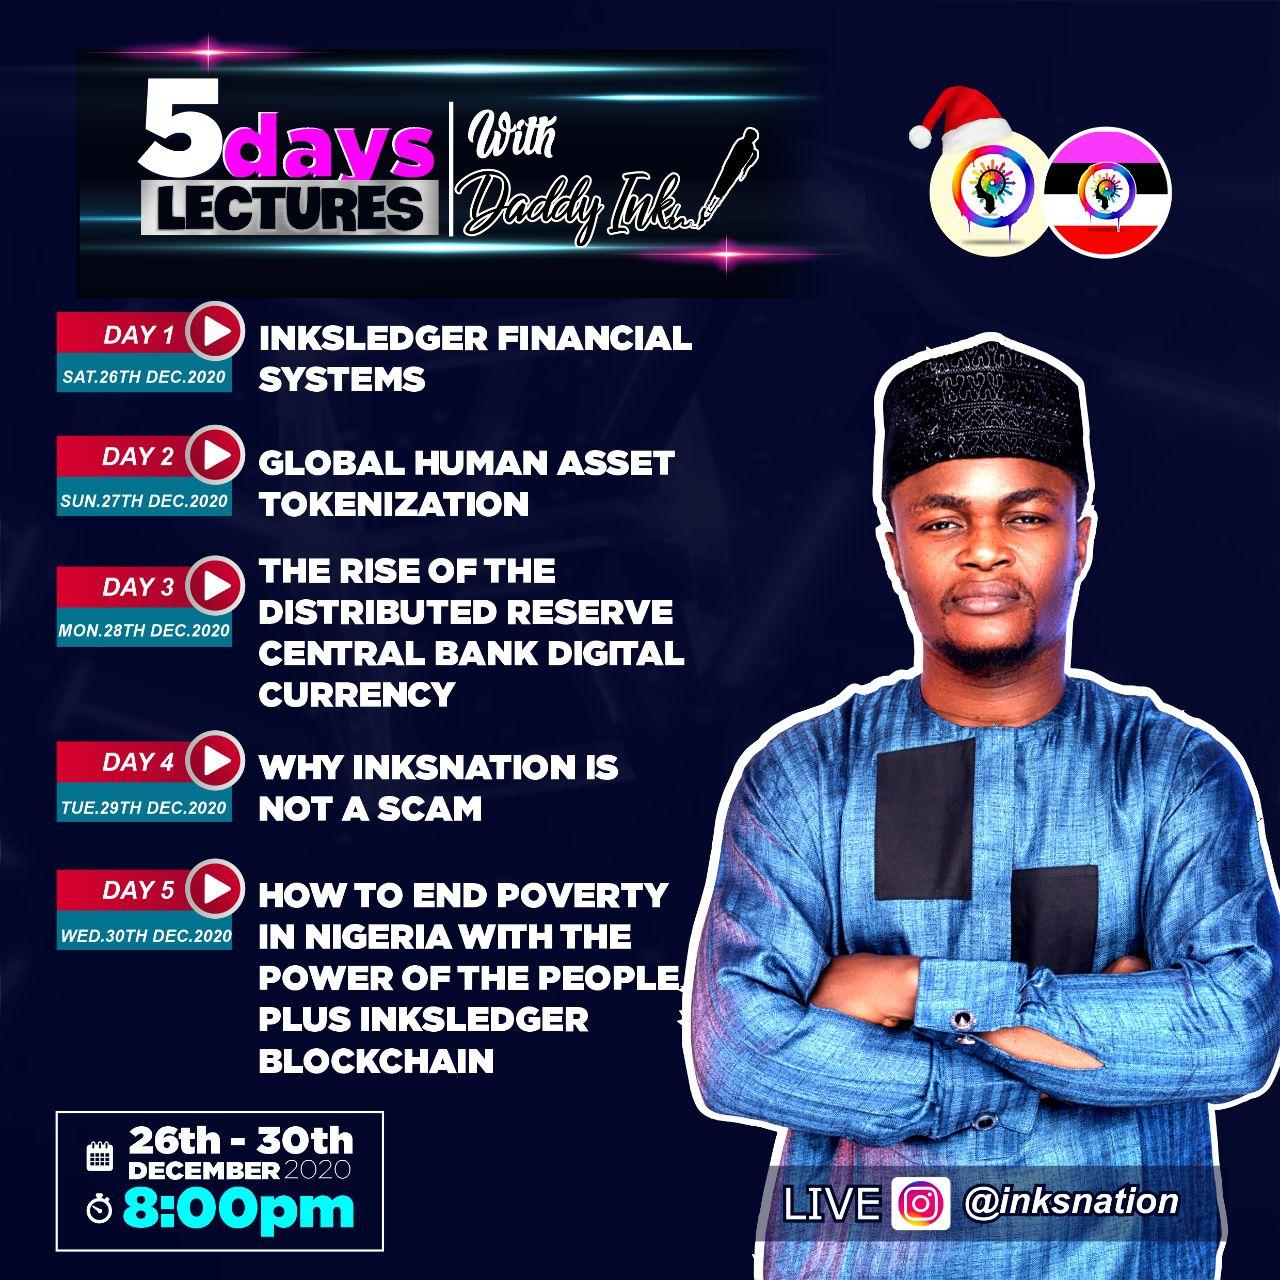 Watch: Highlights from the 5 Days Lecture with Daddyink